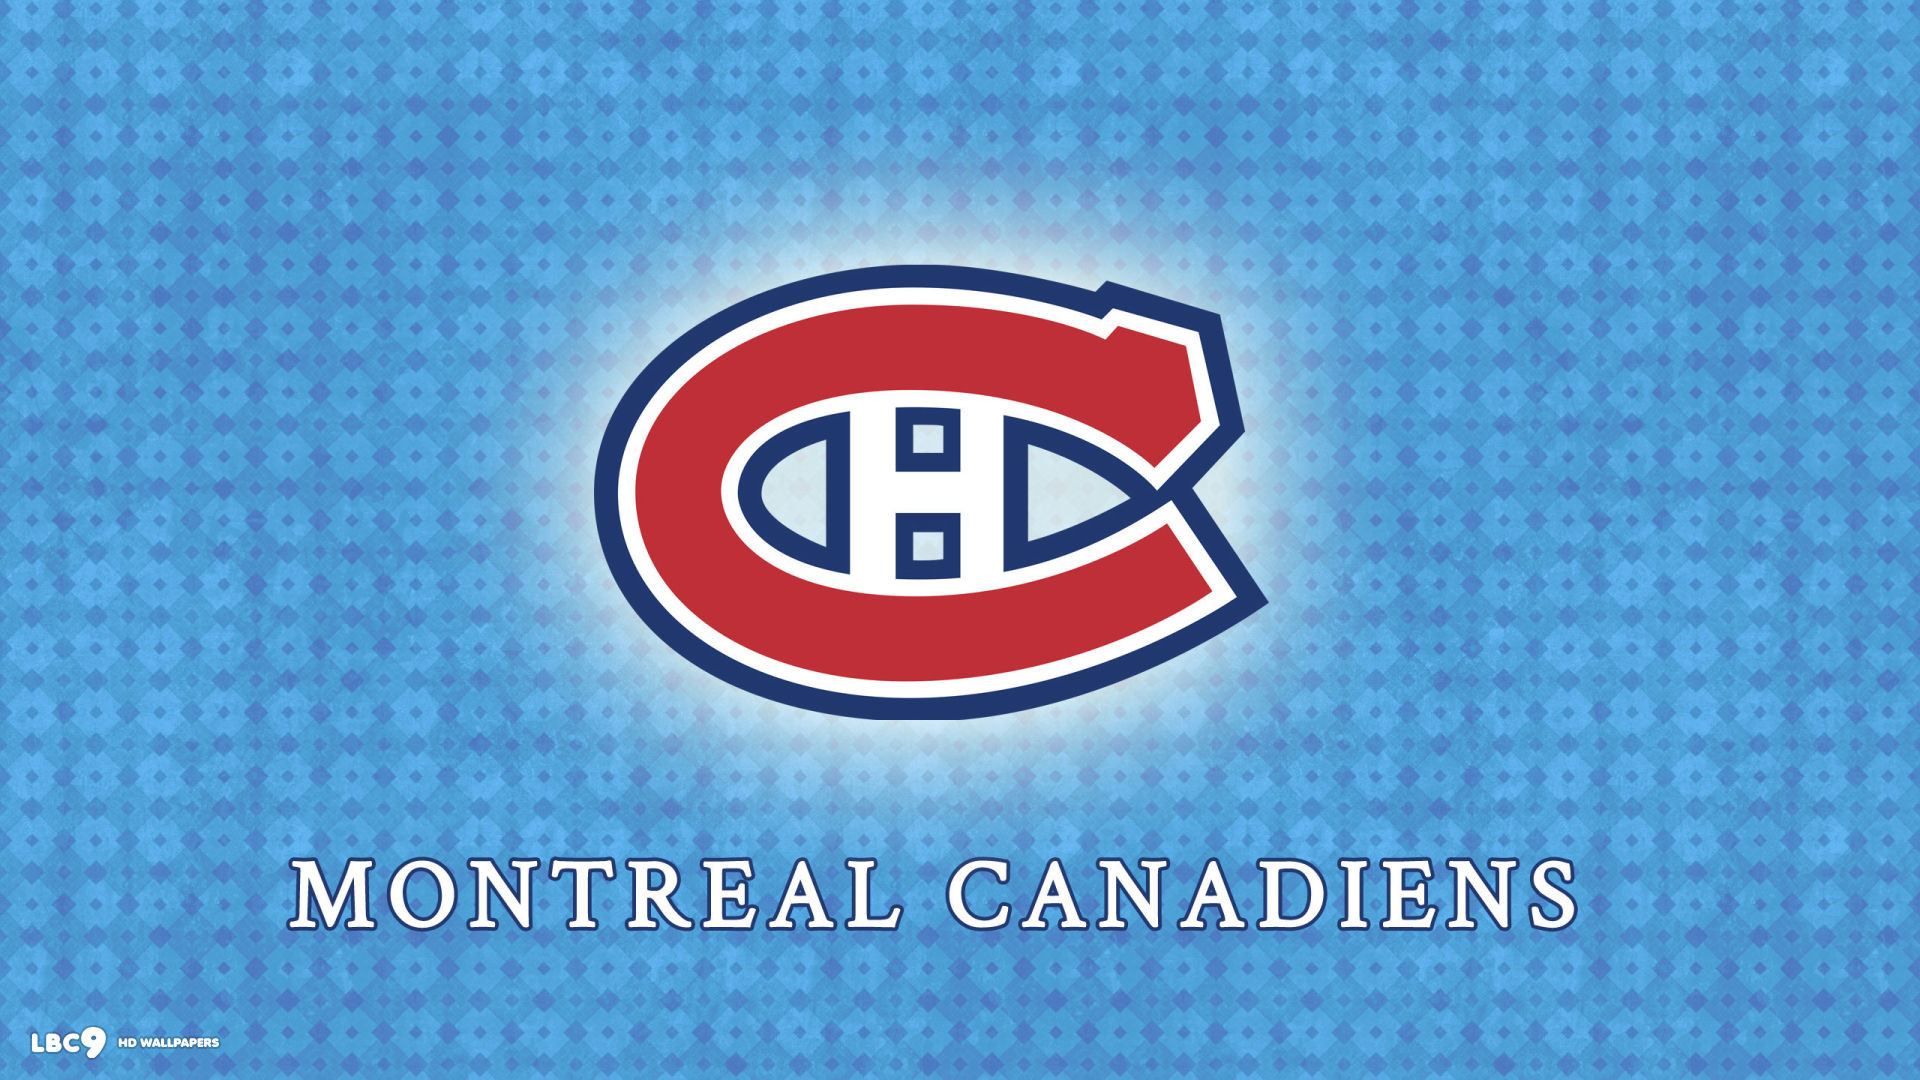 Montreal canadiens logo wallpaper 61 images - Canadiens hockey logo ...